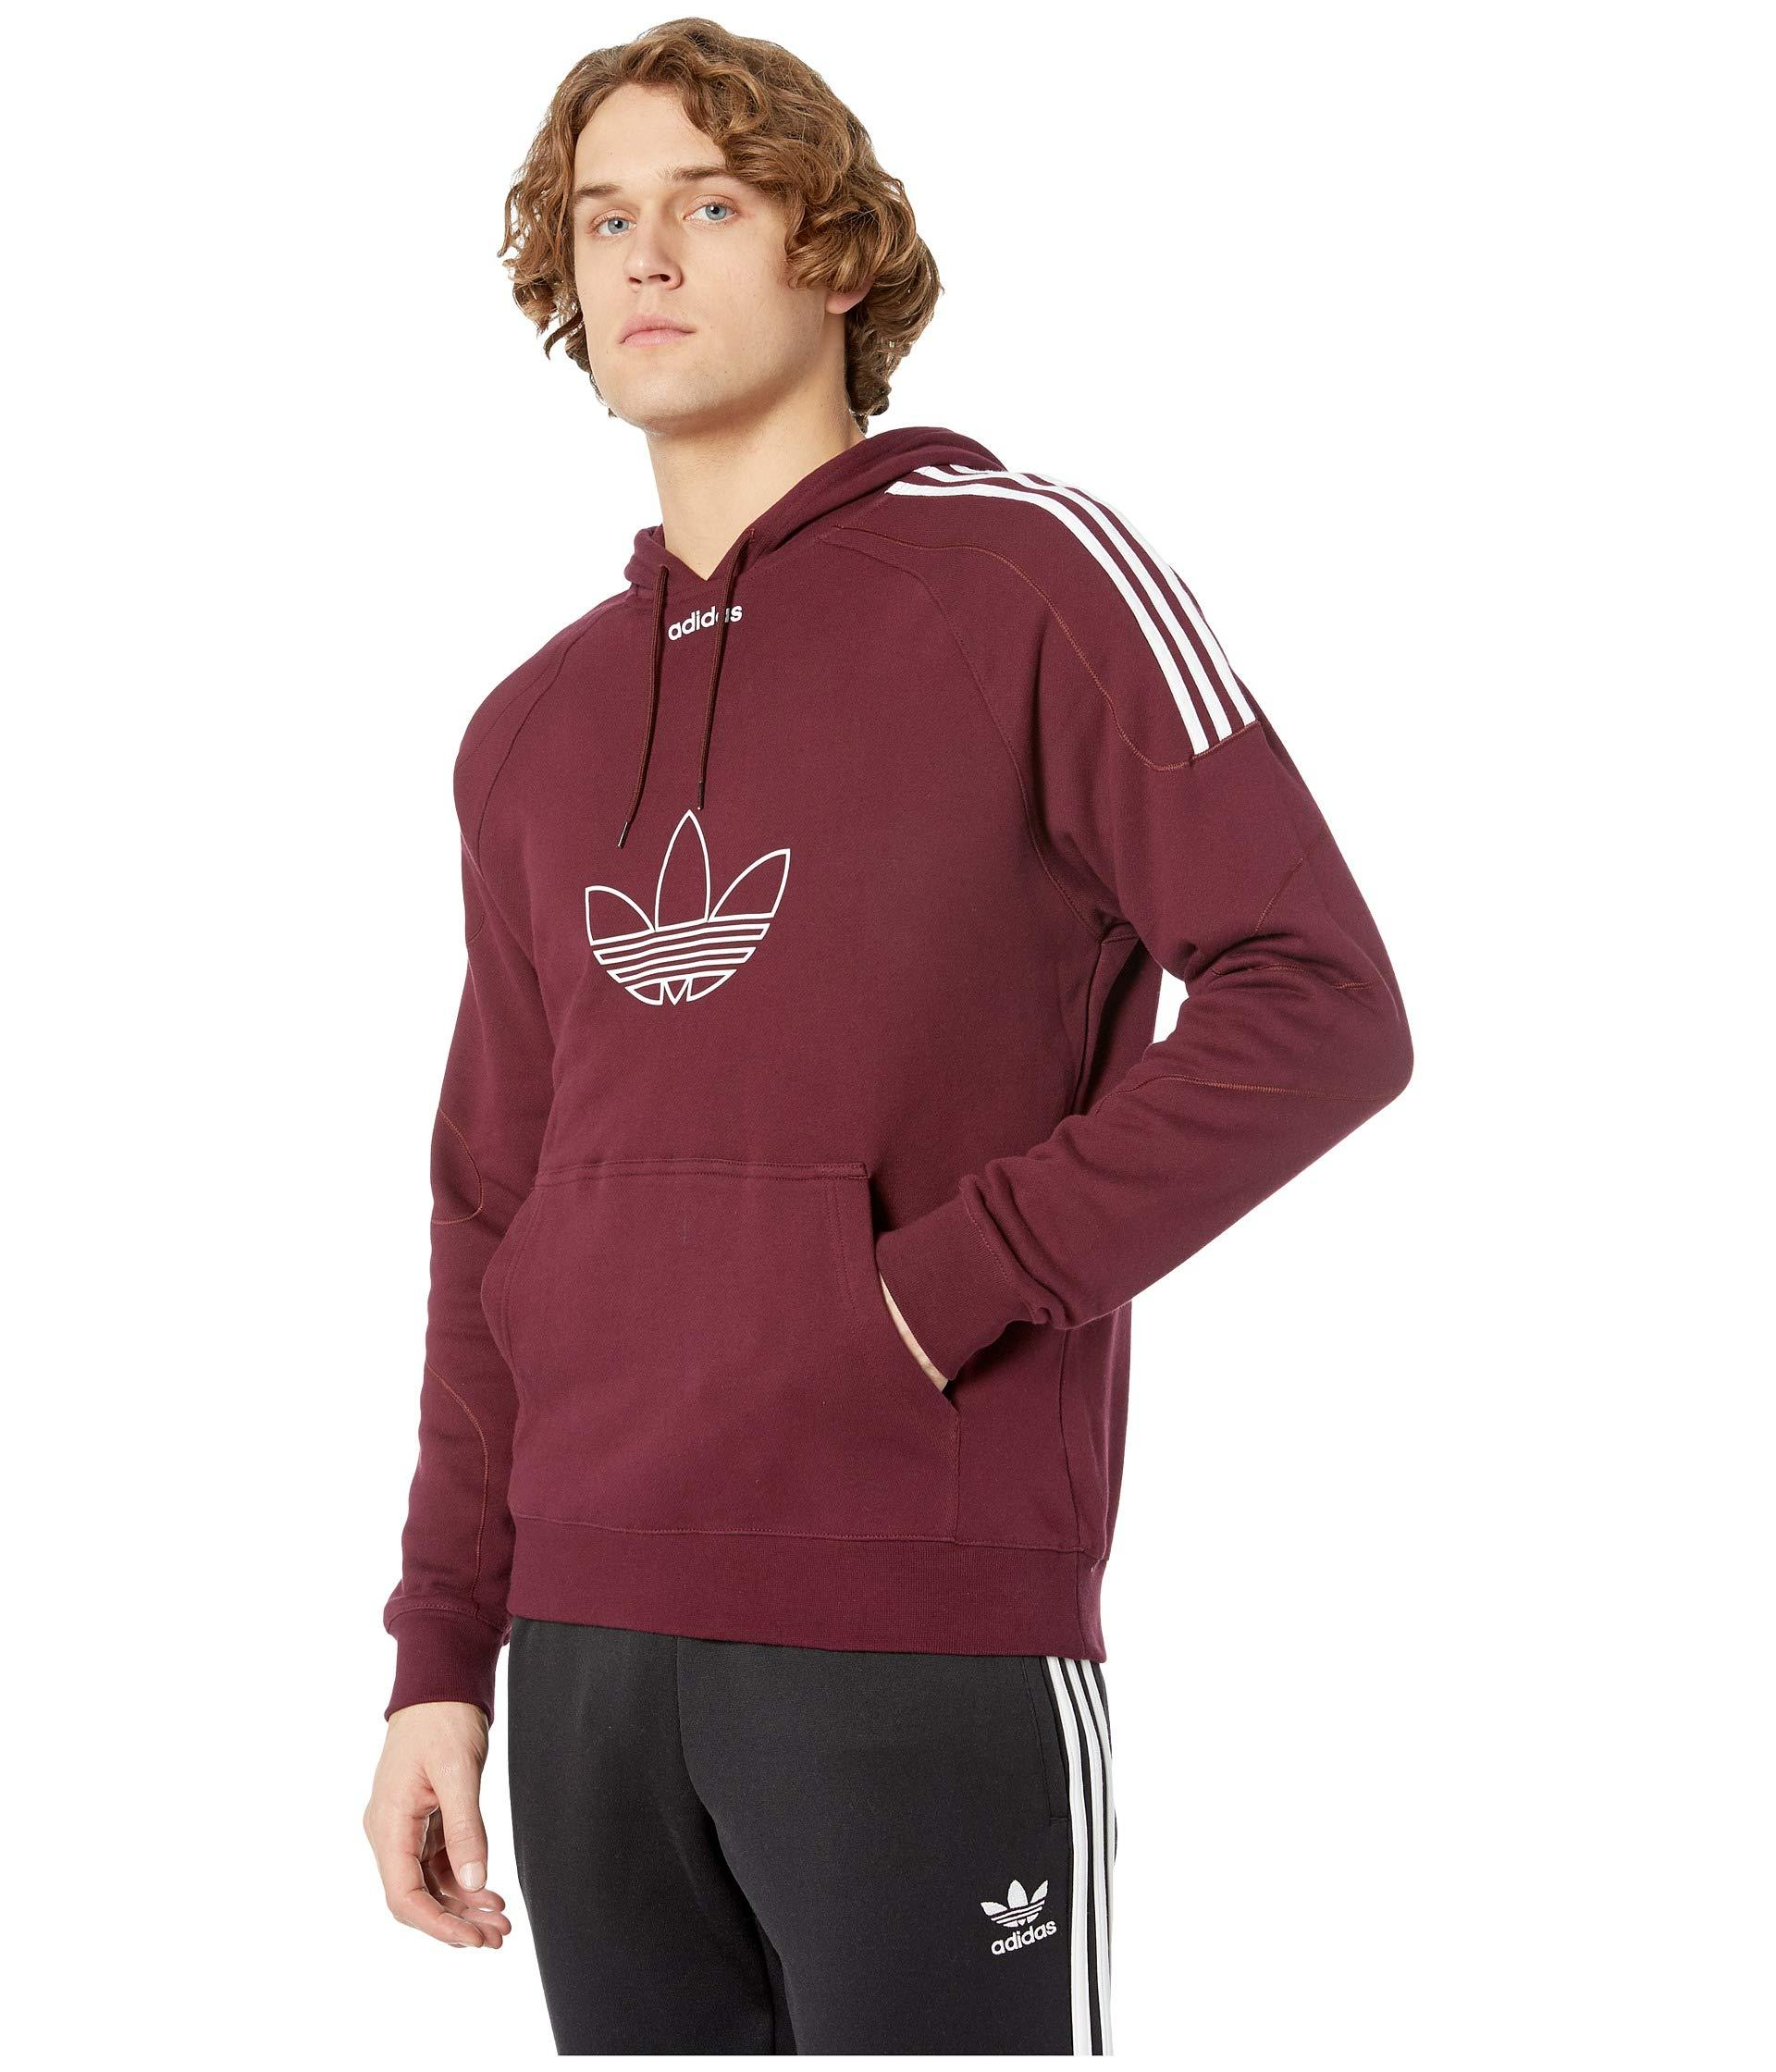 79ac58d72 adidas Originals Flock Hoodie (dark Blue) Men's Sweatshirt in Red ...